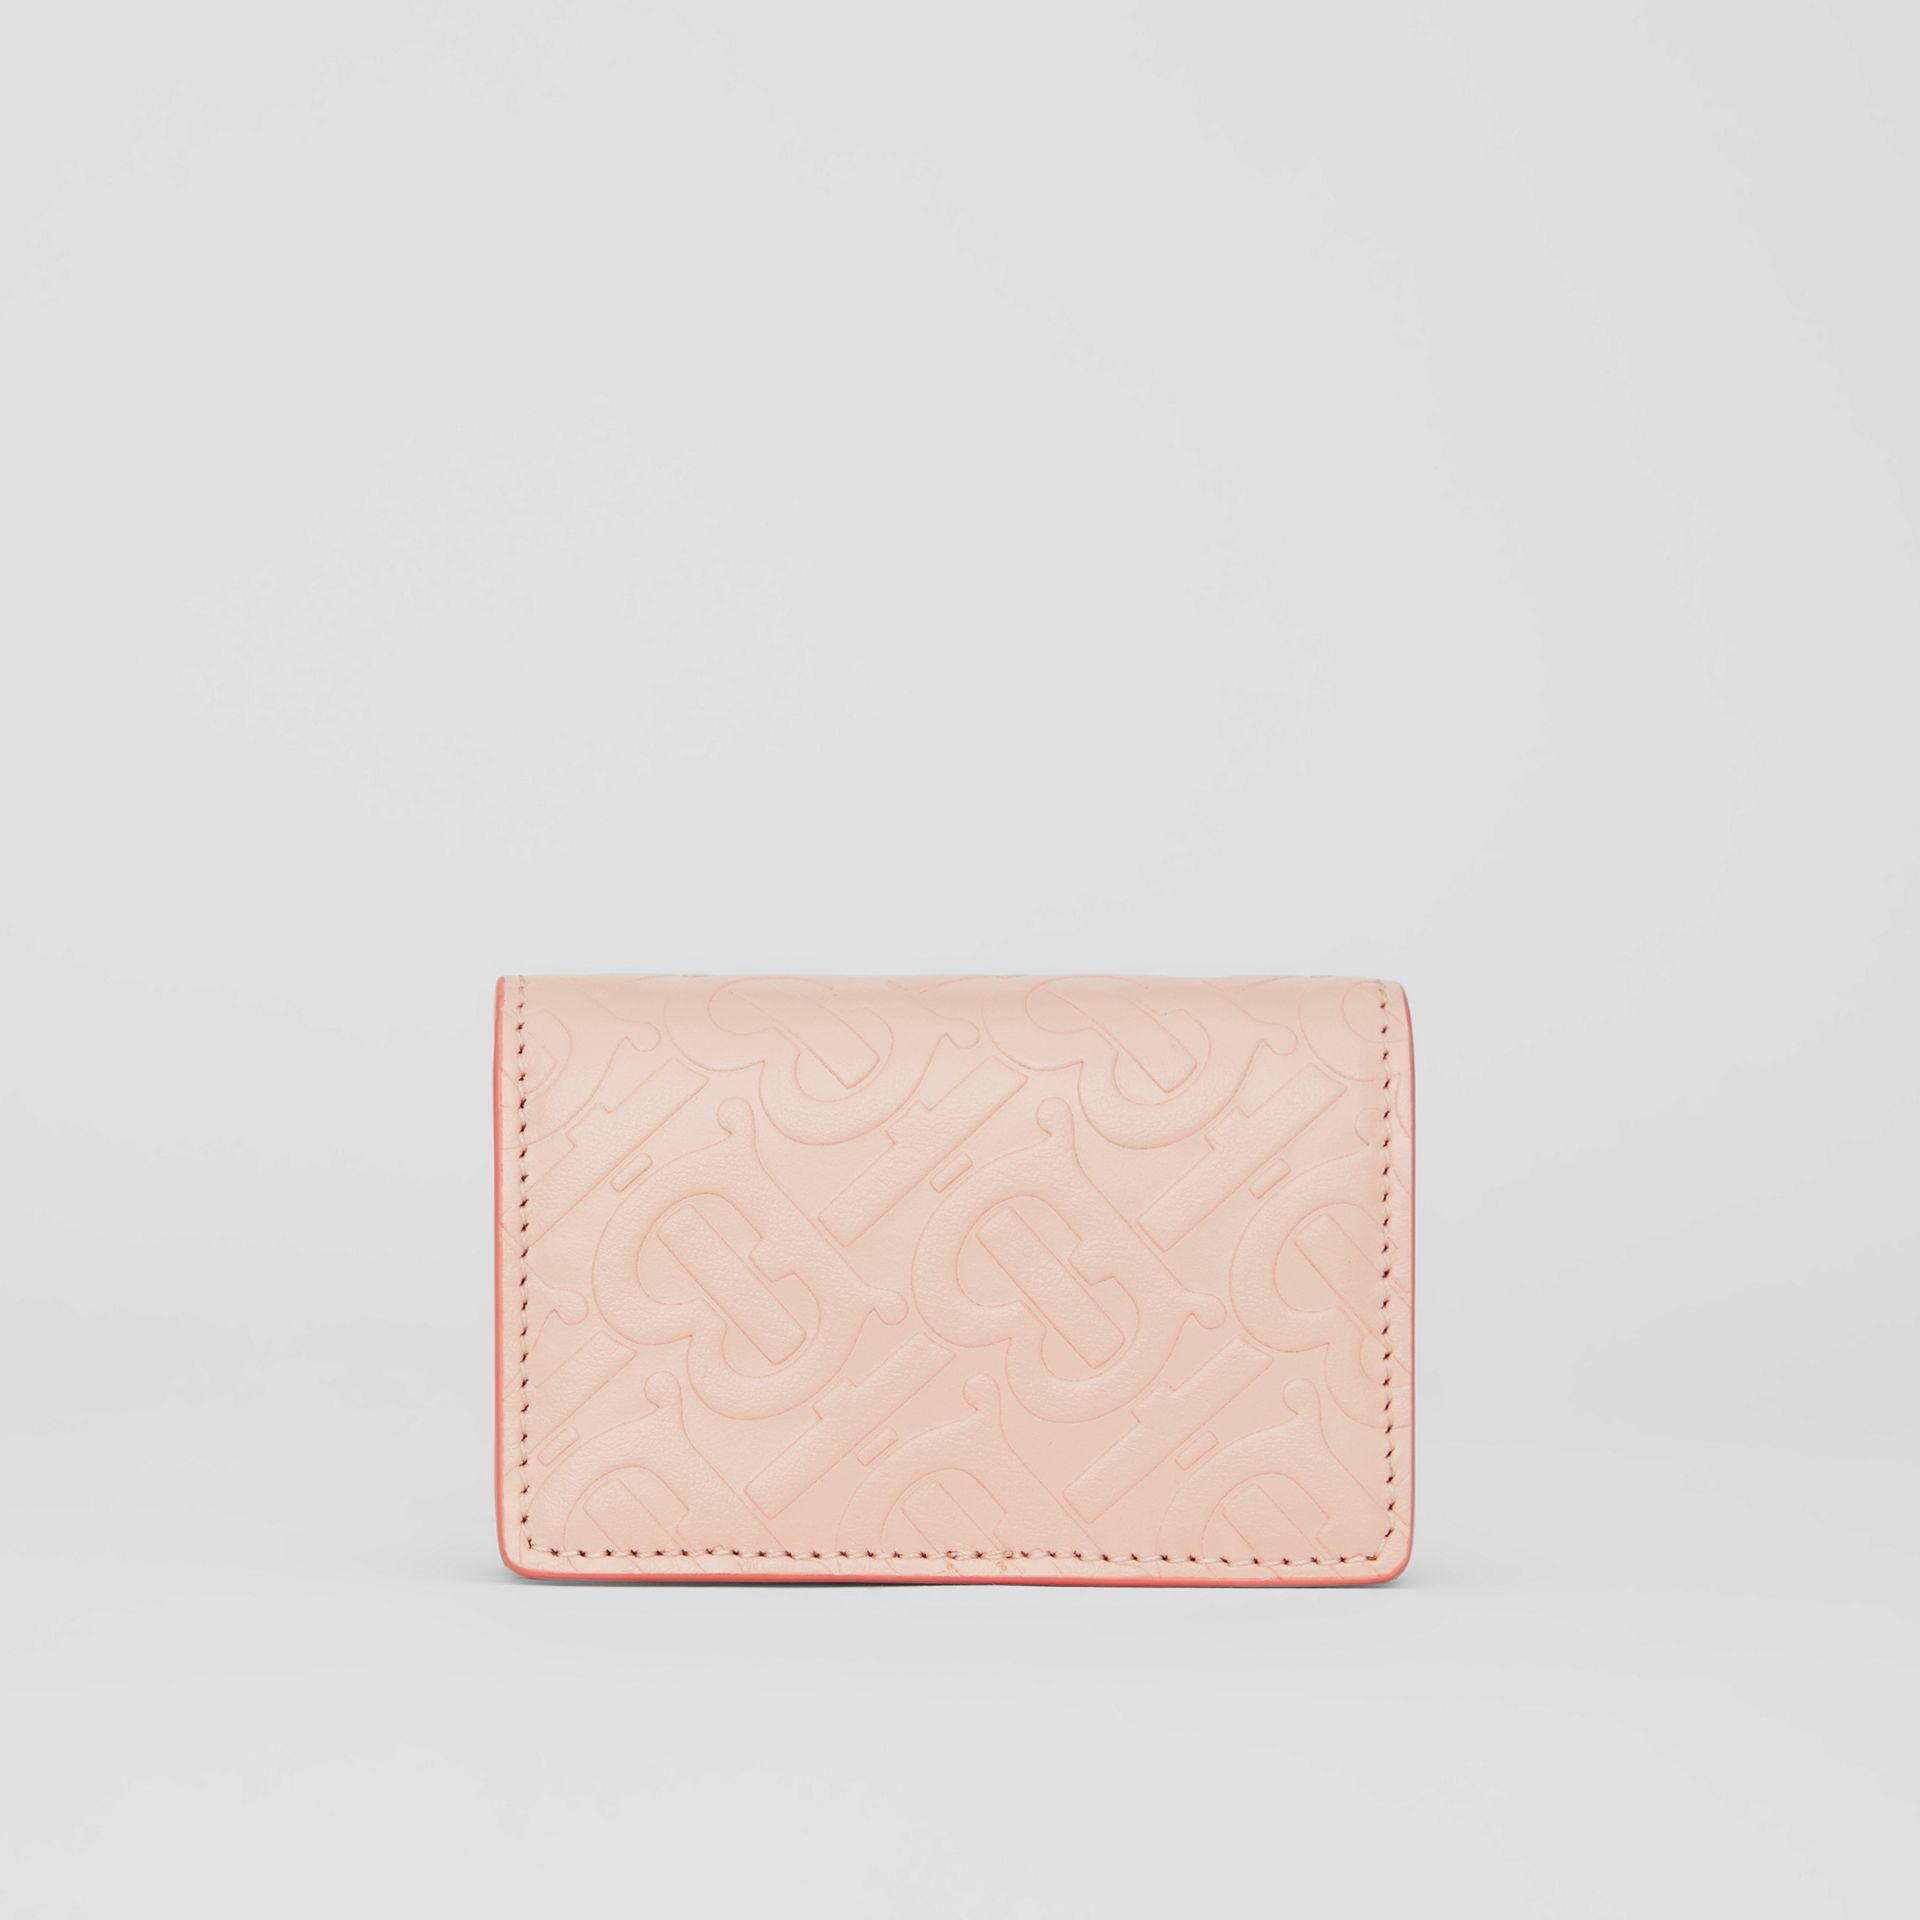 Monogram Leather Card Case in Rose Beige | Burberry Canada - gallery image 4